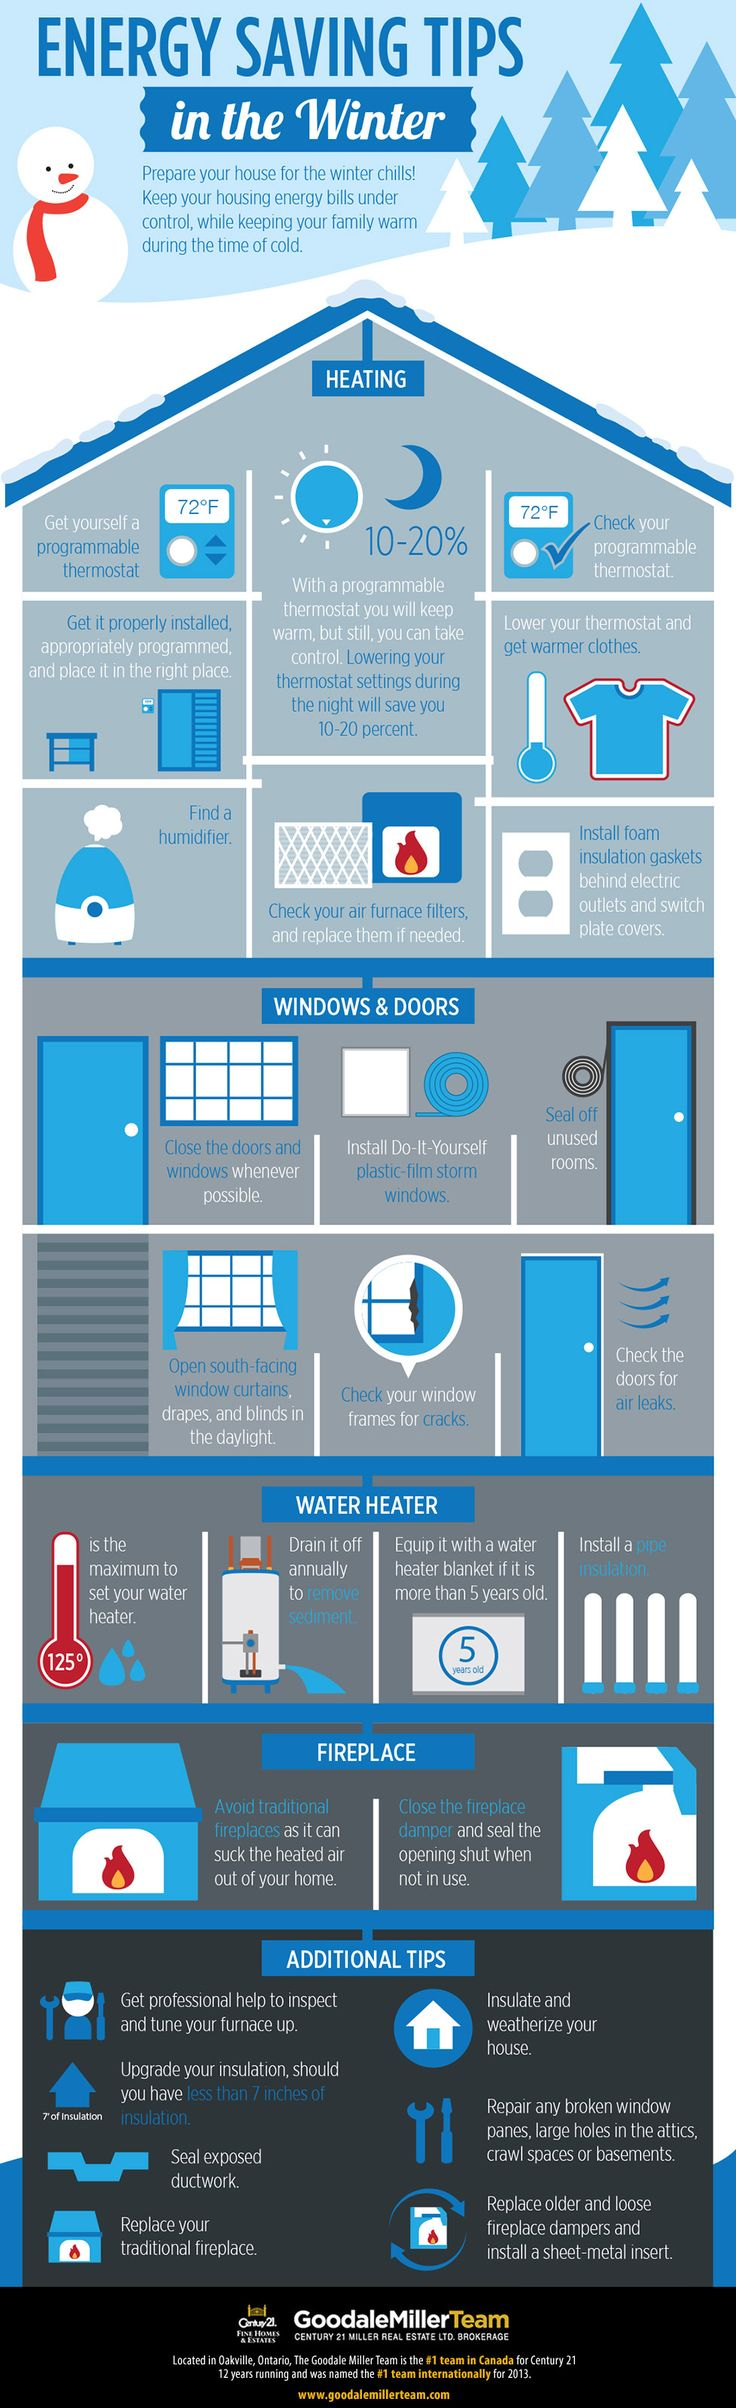 44 Best Diy Winter Weatherization Images On Pinterest  Energy Efficiency,  Save Energy And Energy Saving Tips